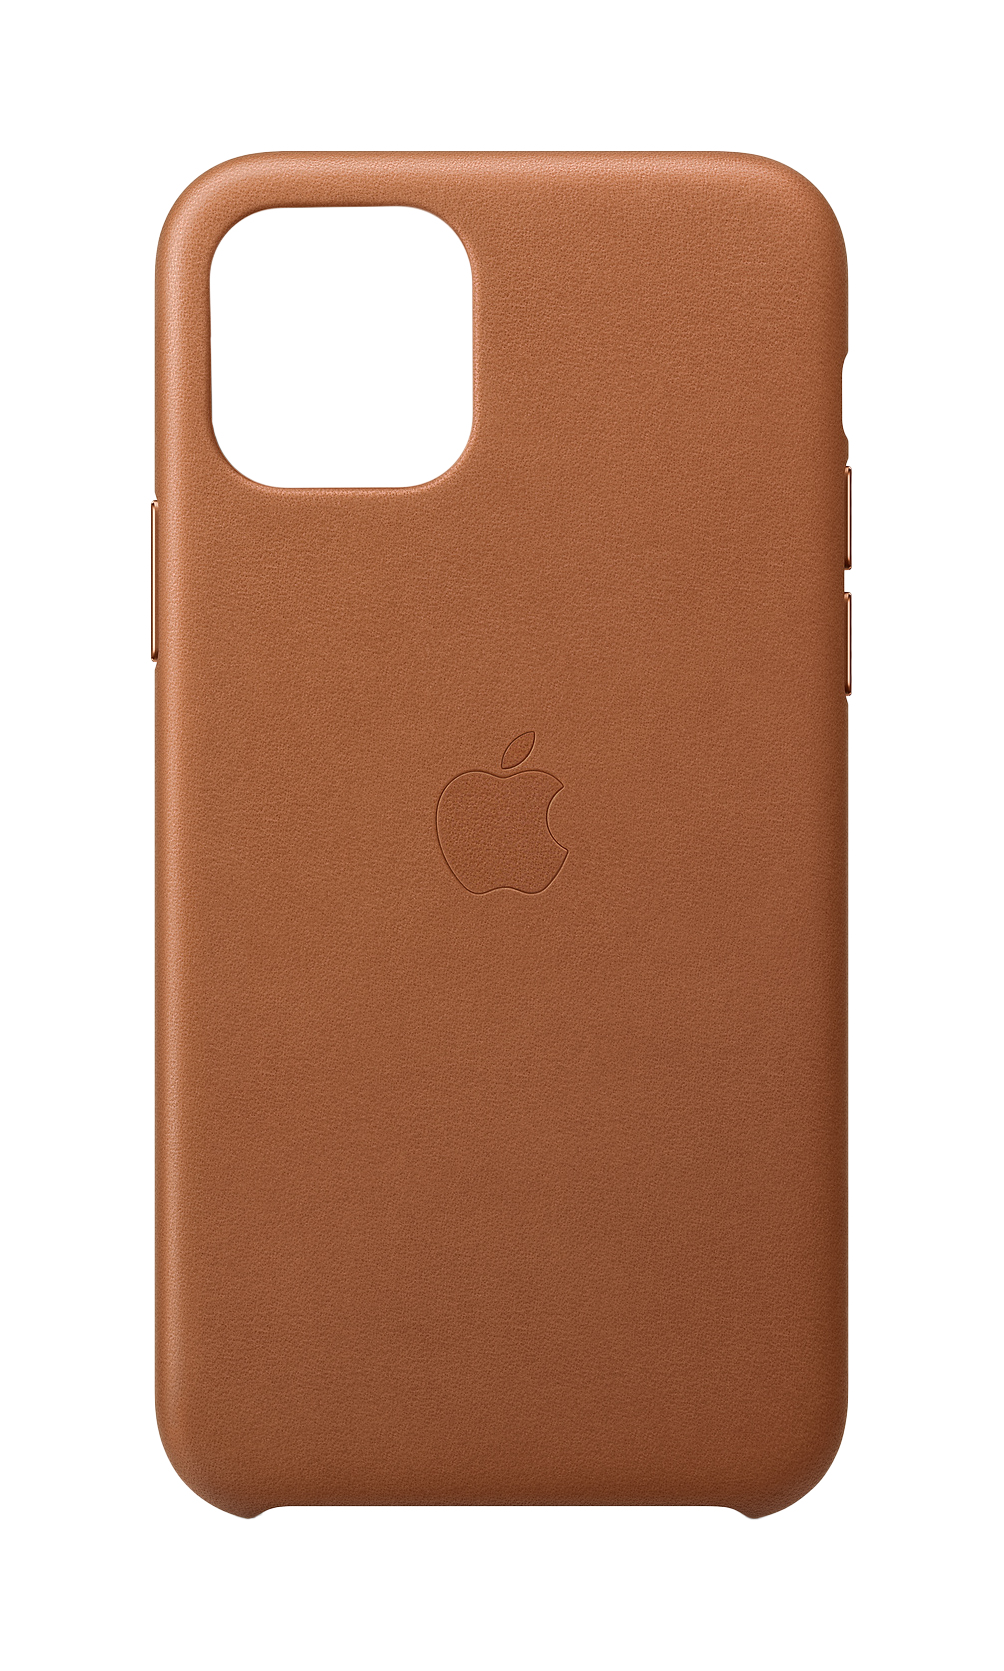 "Apple MWYD2ZM/A mobile phone case 14.7 cm (5.8"") Cover Brown"